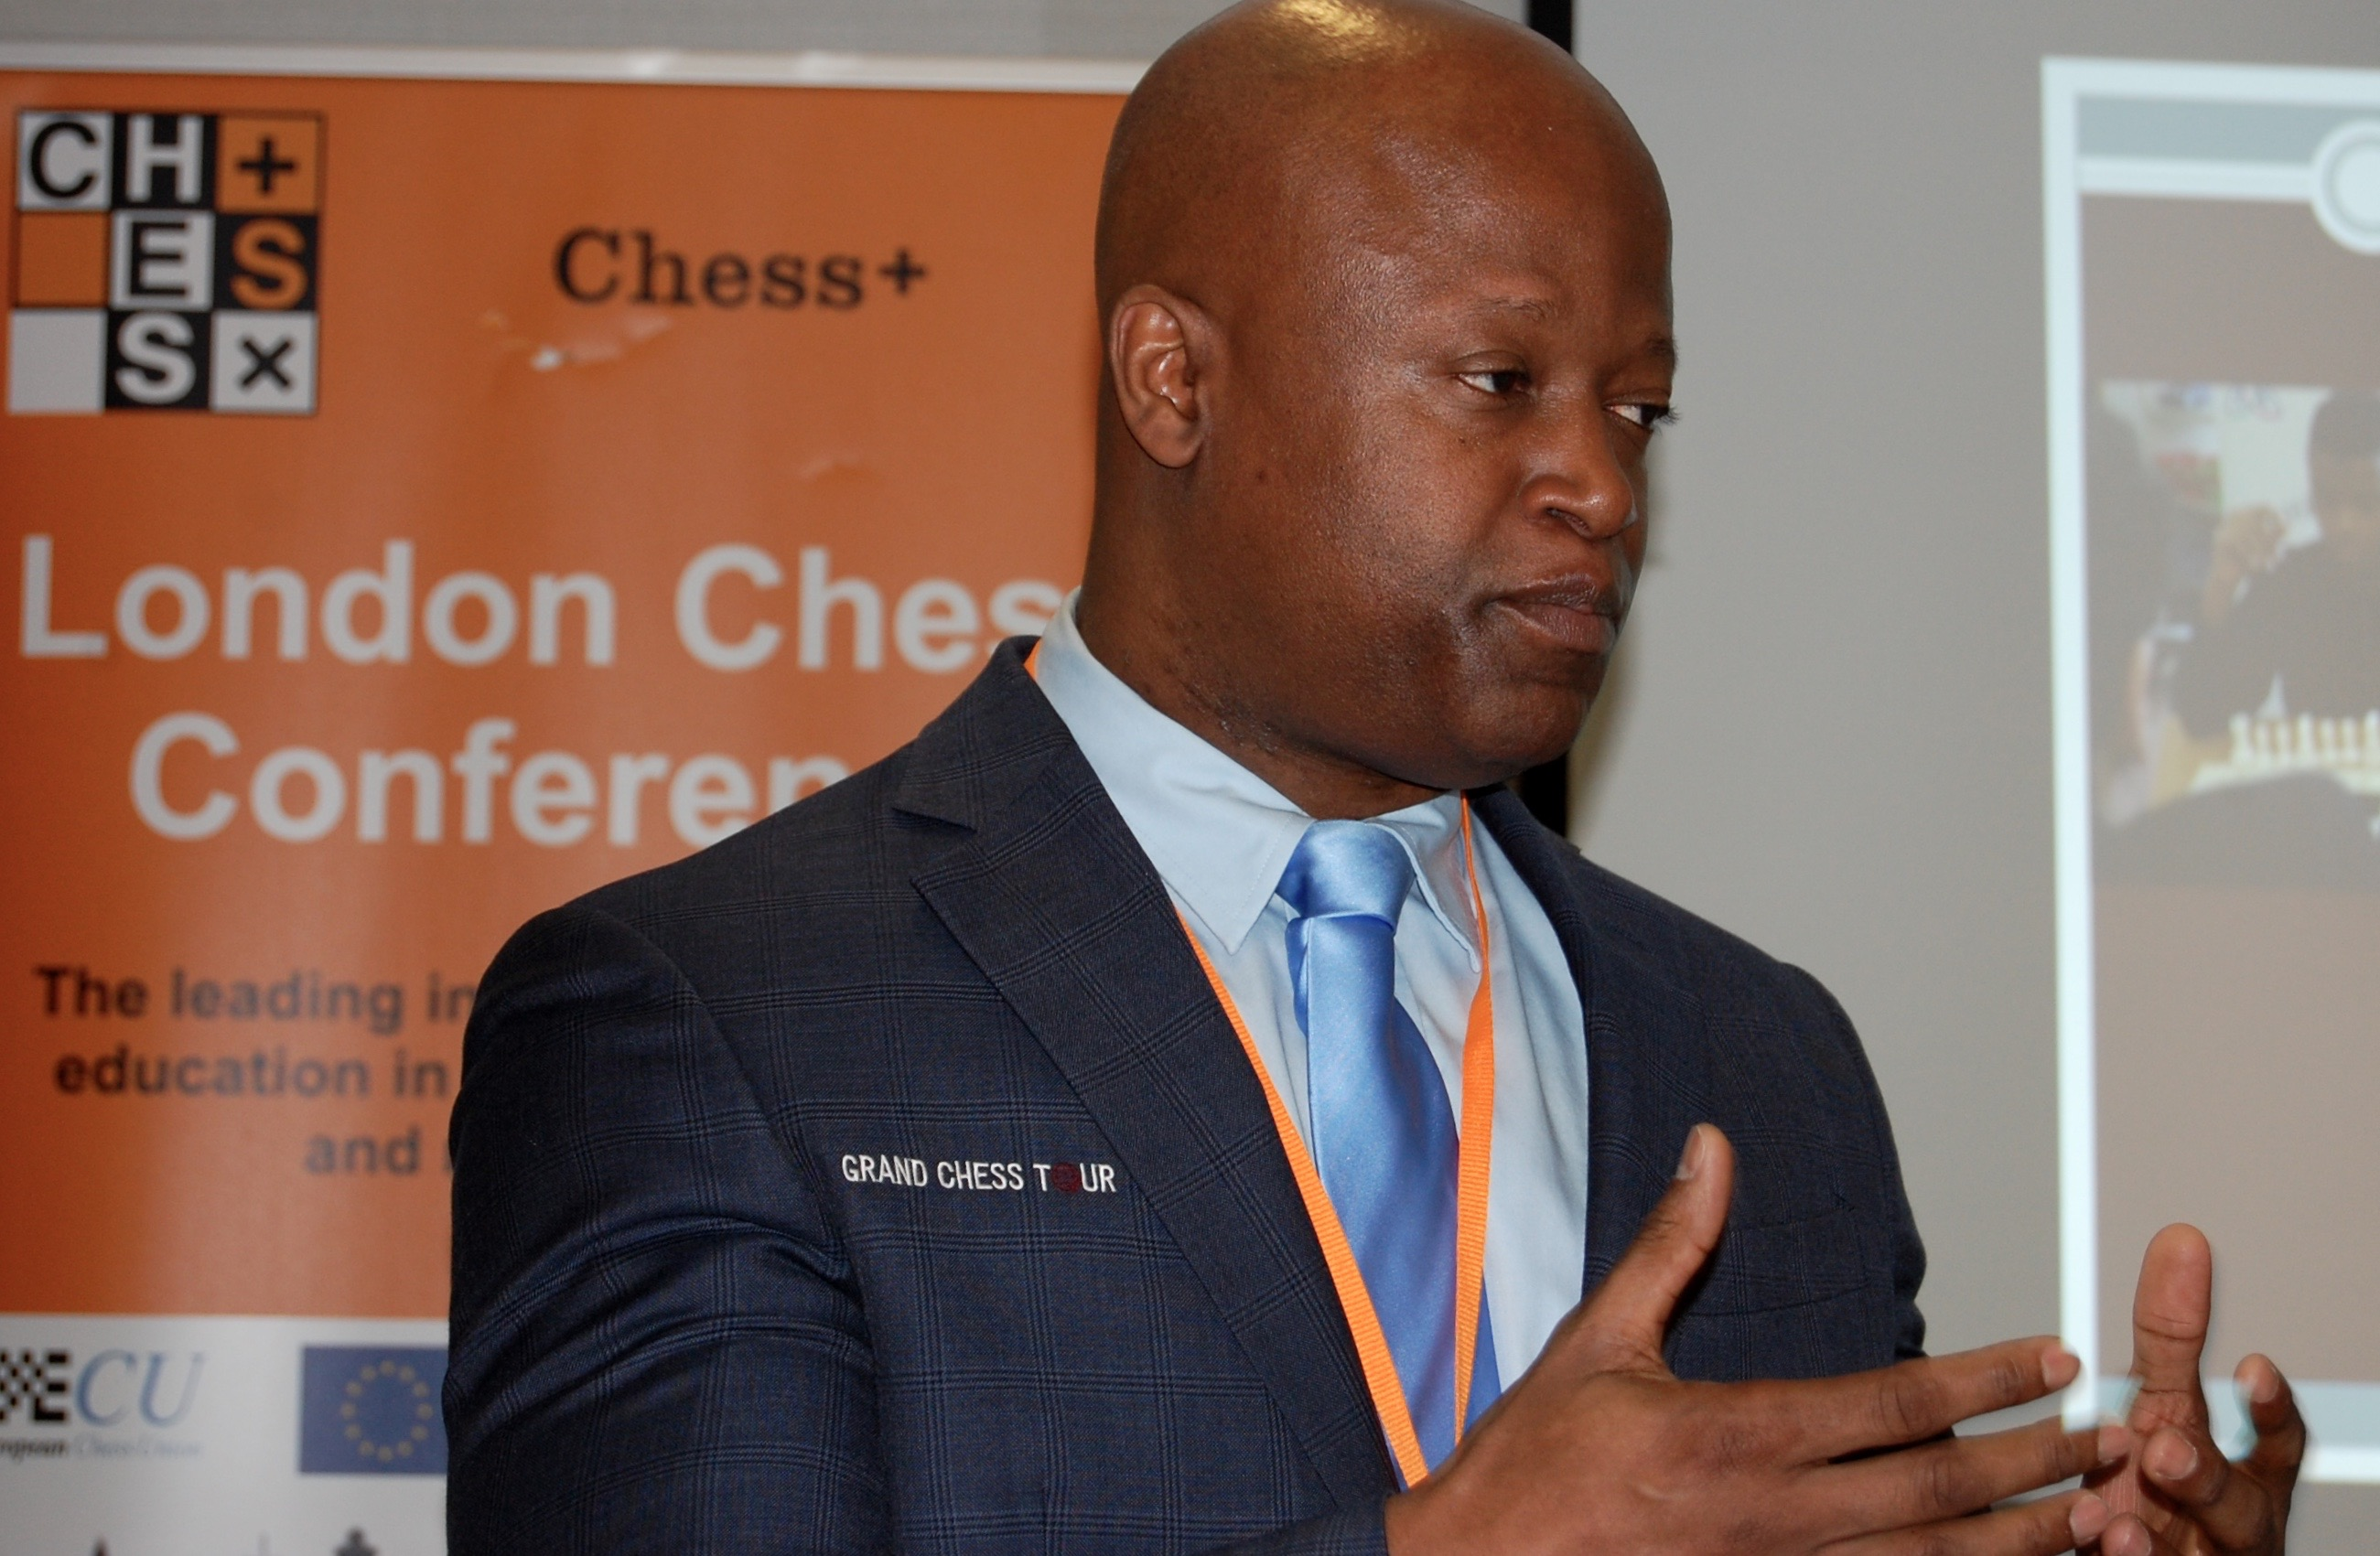 GM Maurice Ashley from the Grand Chess Tour speaking at the 2017 London Chess Conference on Scholastic Chess